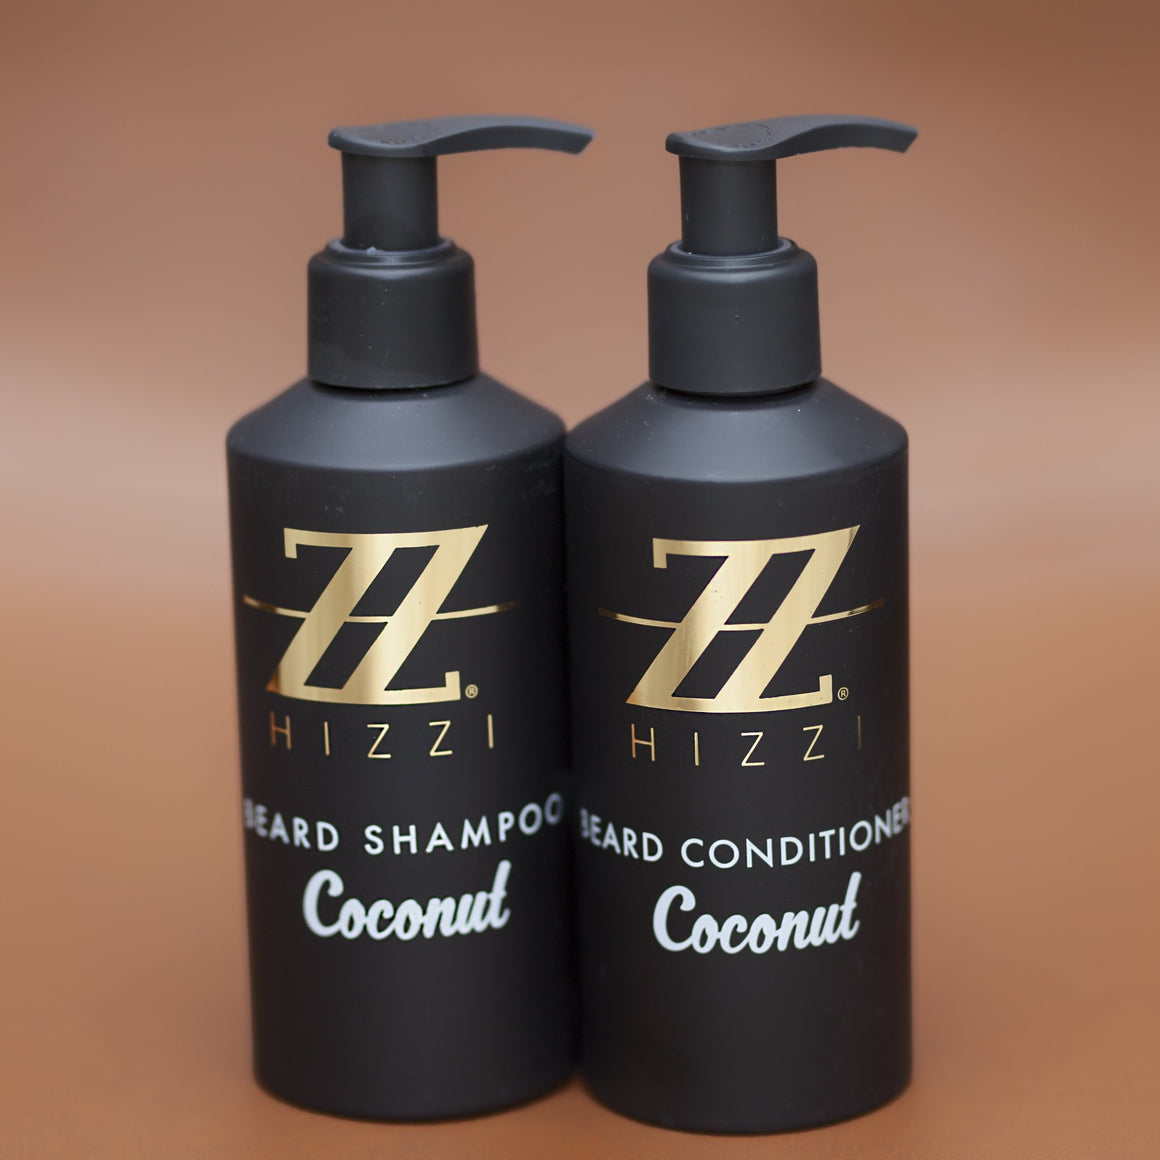 Beard Shampoo & Conditioner Wash Kit